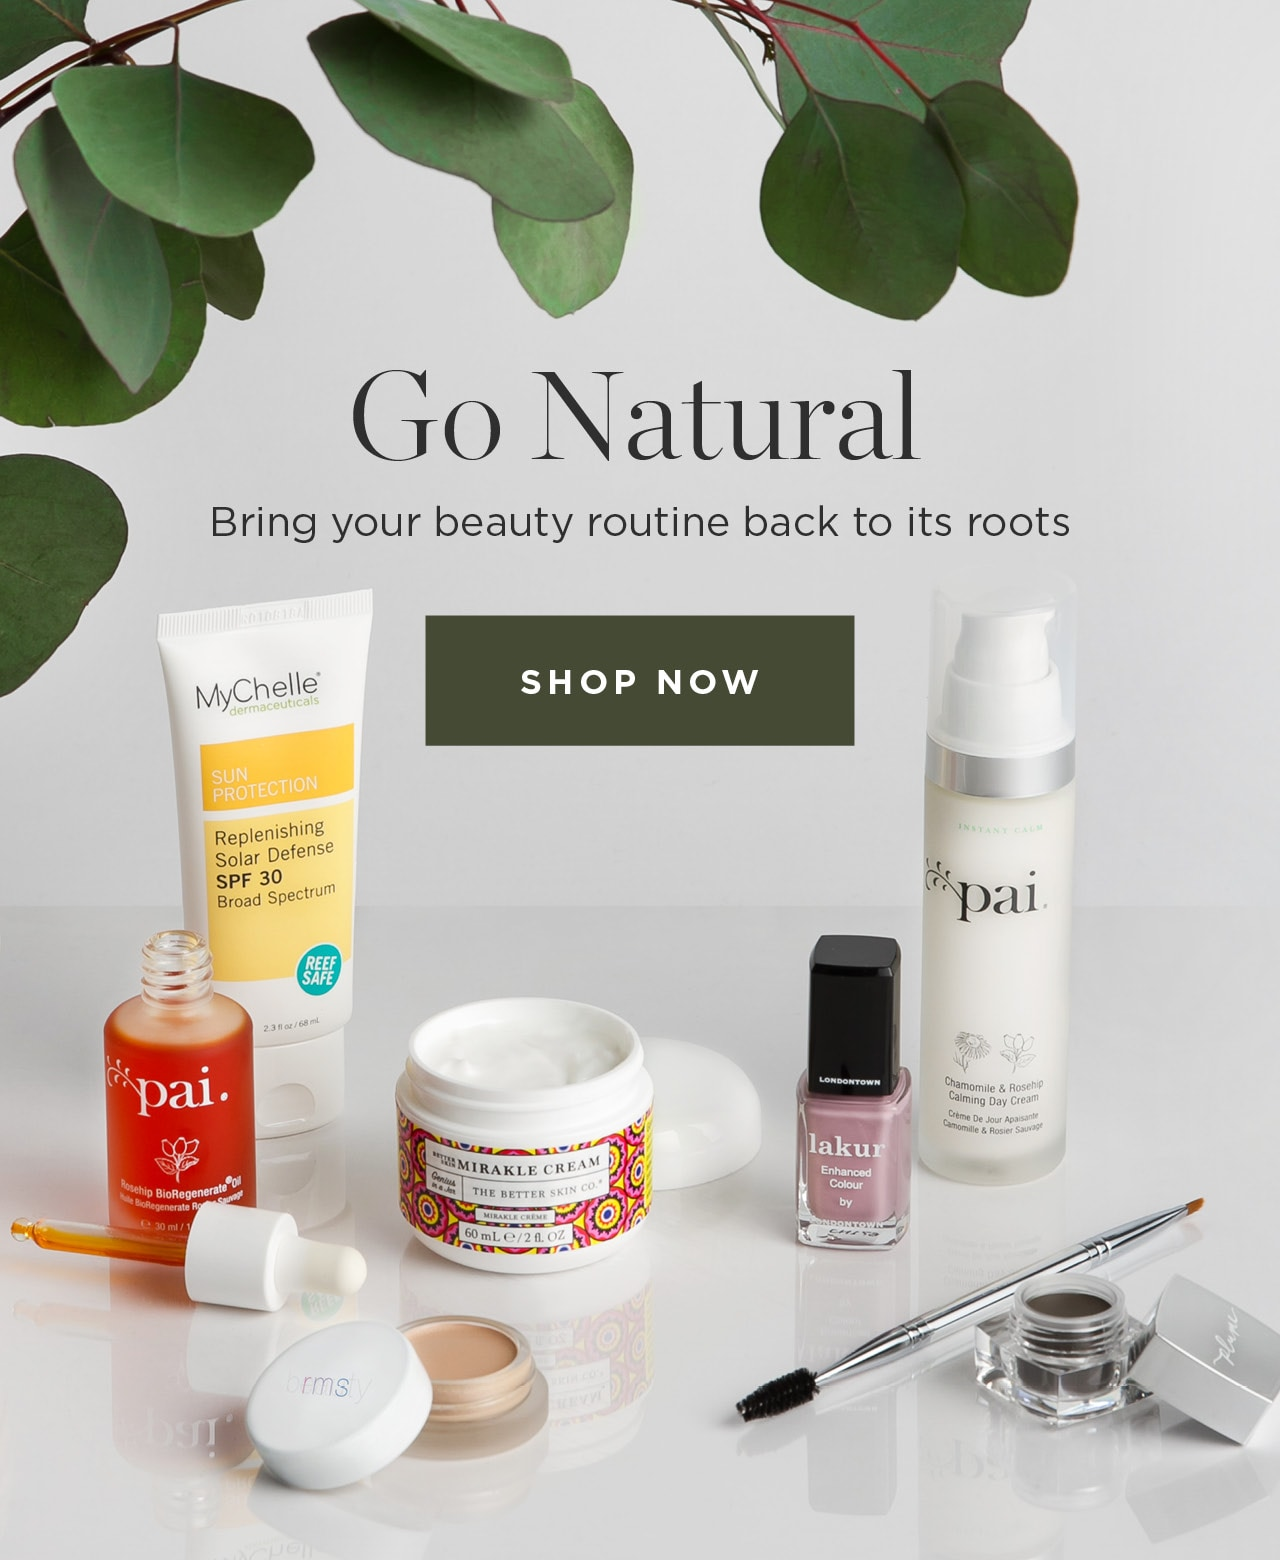 Go Natural. Bring your beauty routine back to its roots